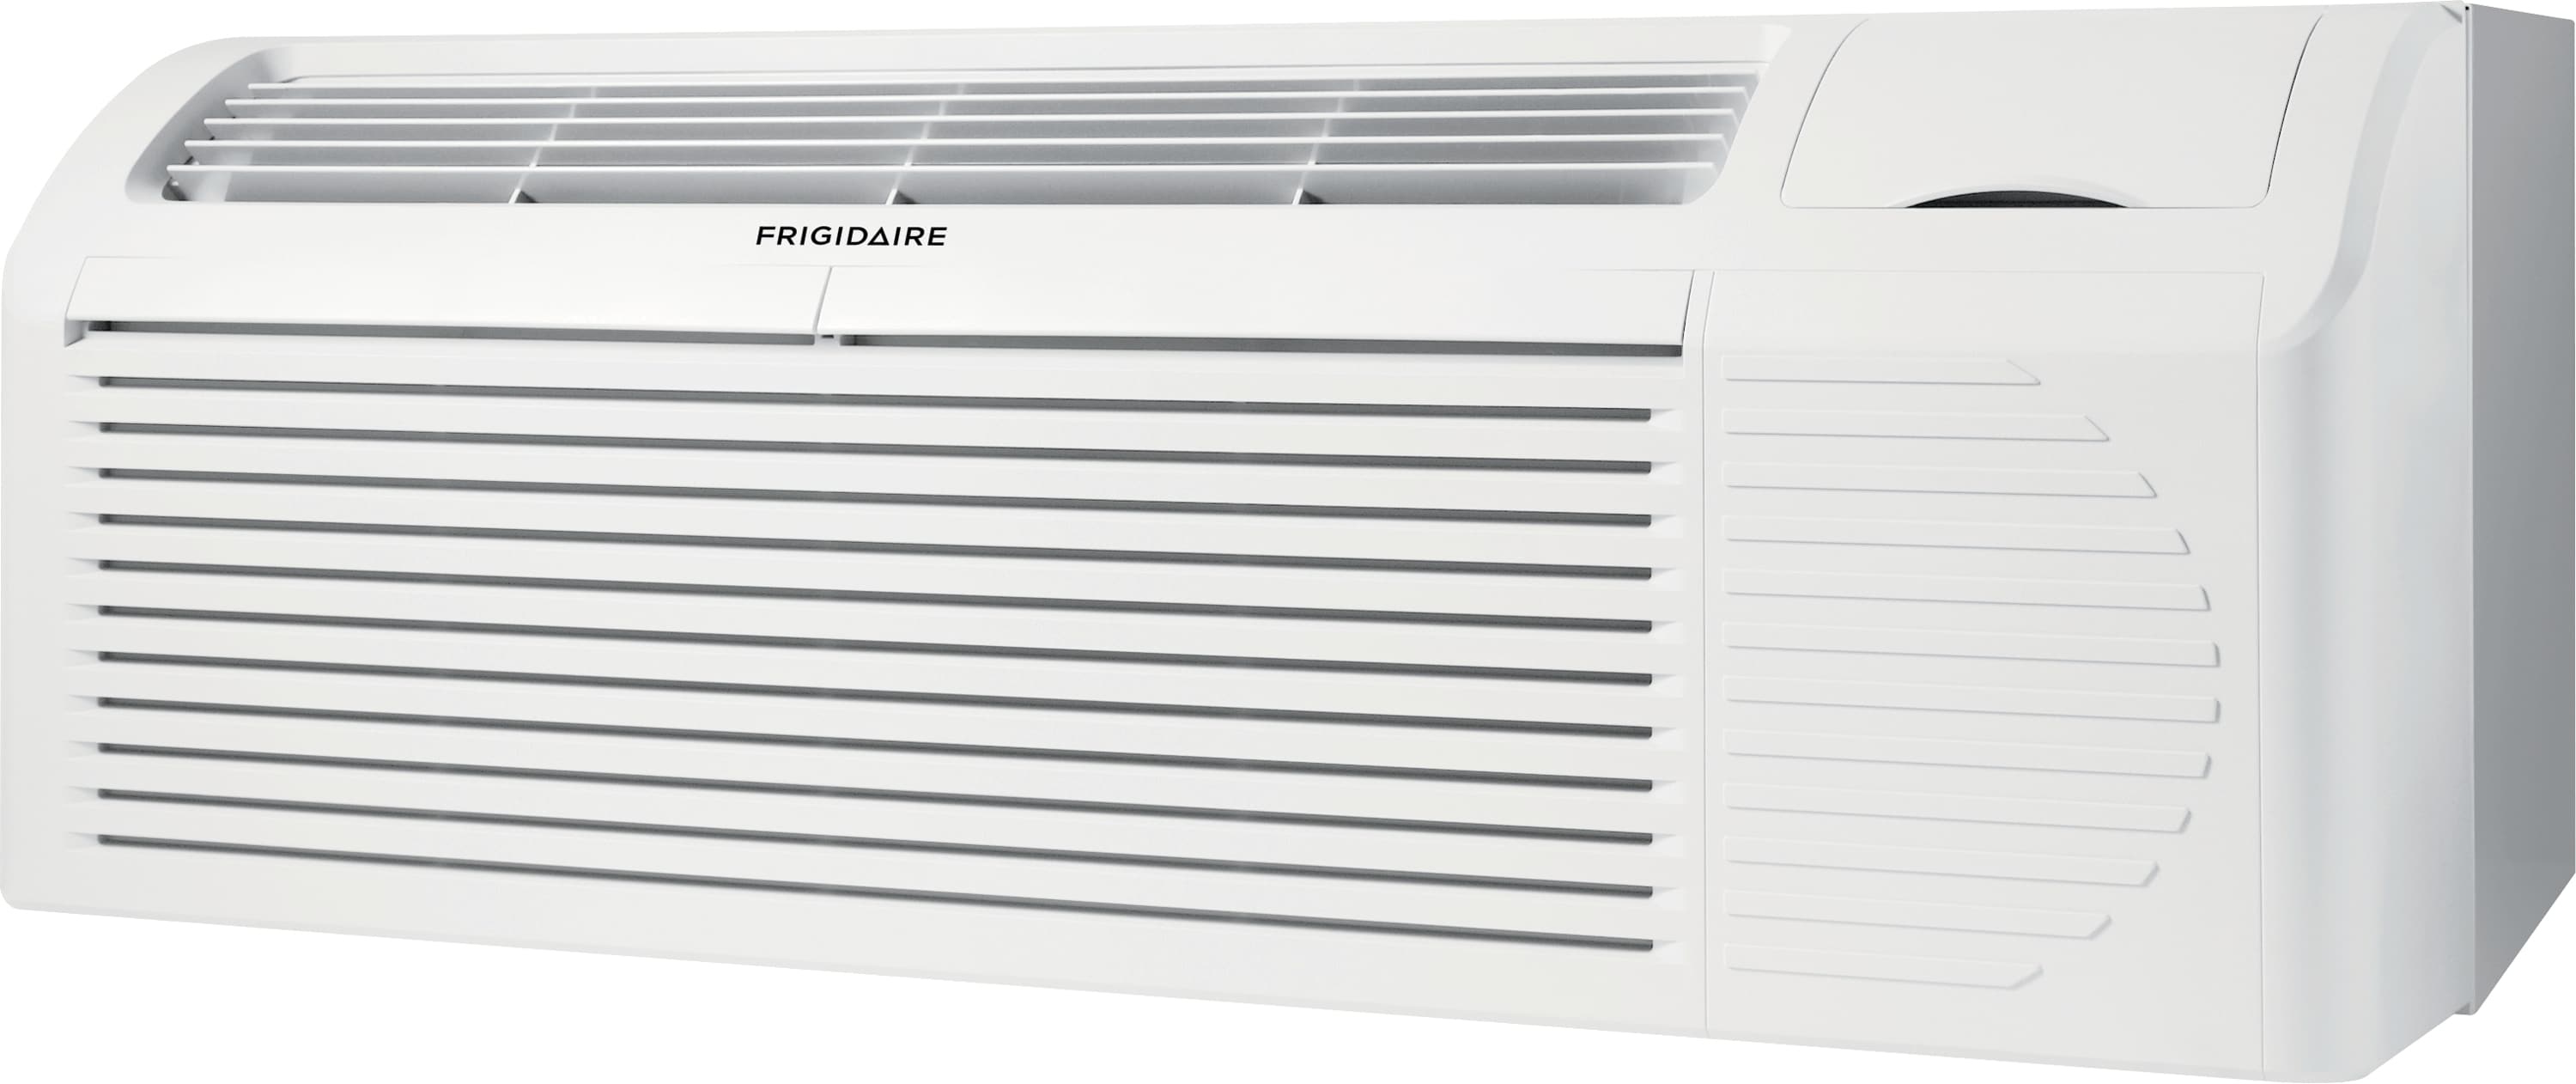 PTAC unit with Heat Pump and Electric Heat backup 12,000 BTU 265V with Corrosion Guard and Dry Mode